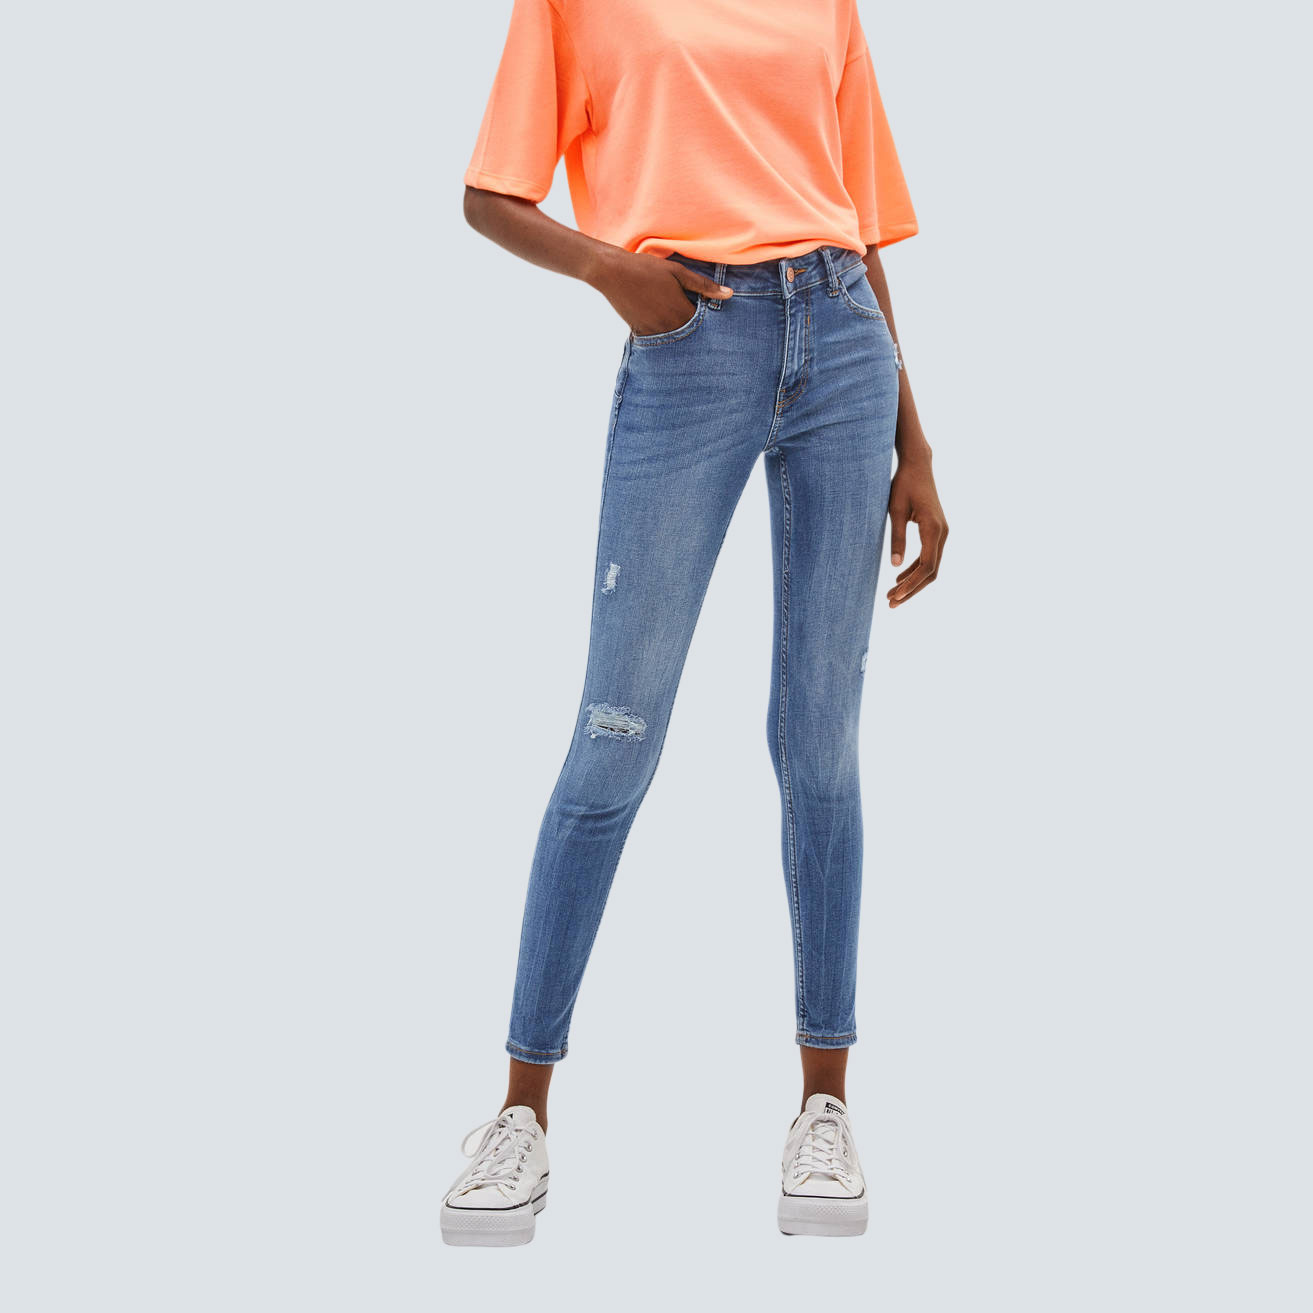 Push-up Jeans 1